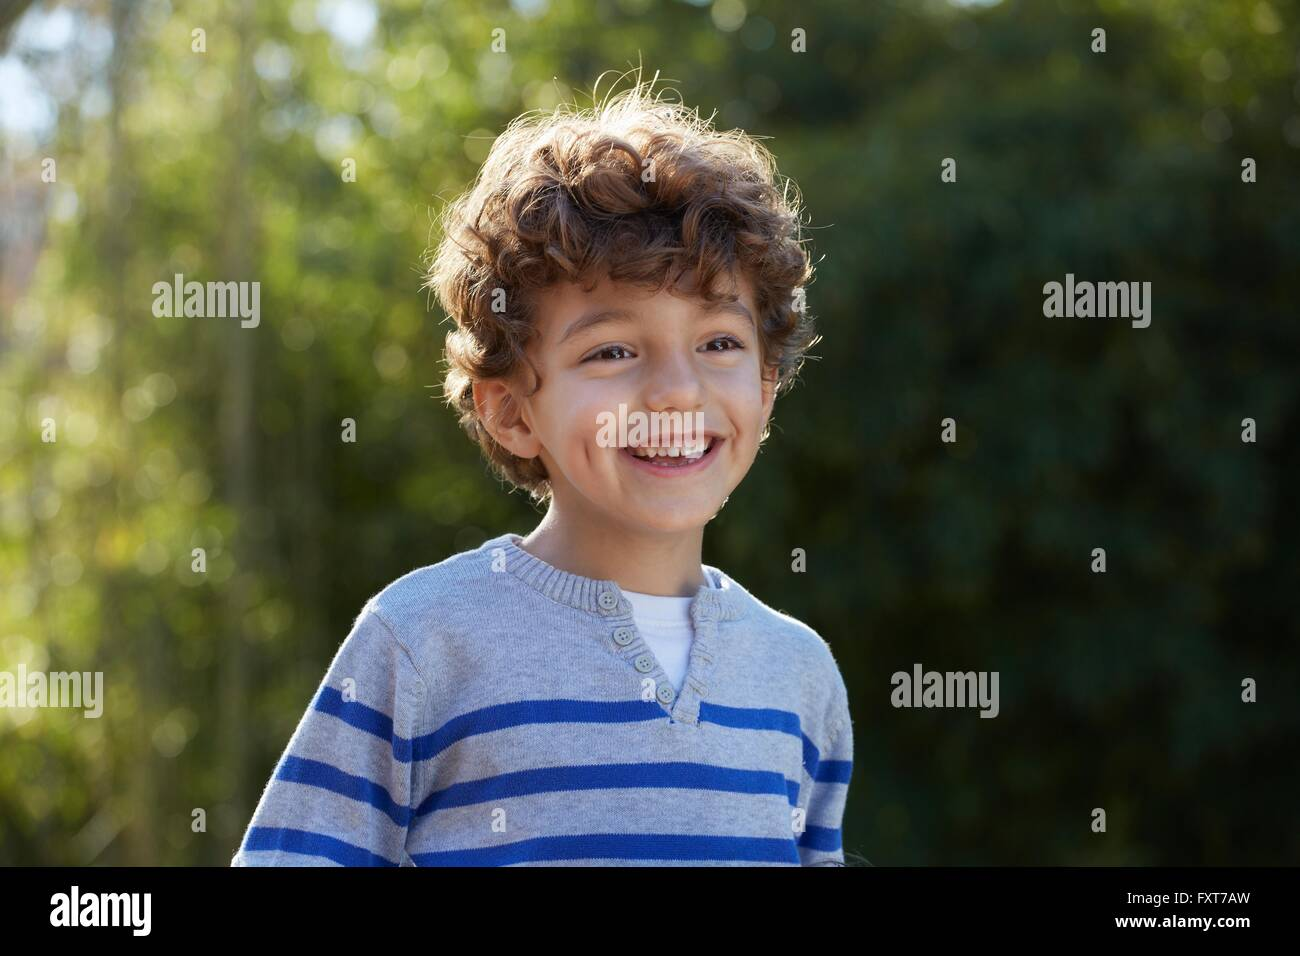 Portrait of curly haired boy looking away smiling - Stock Image